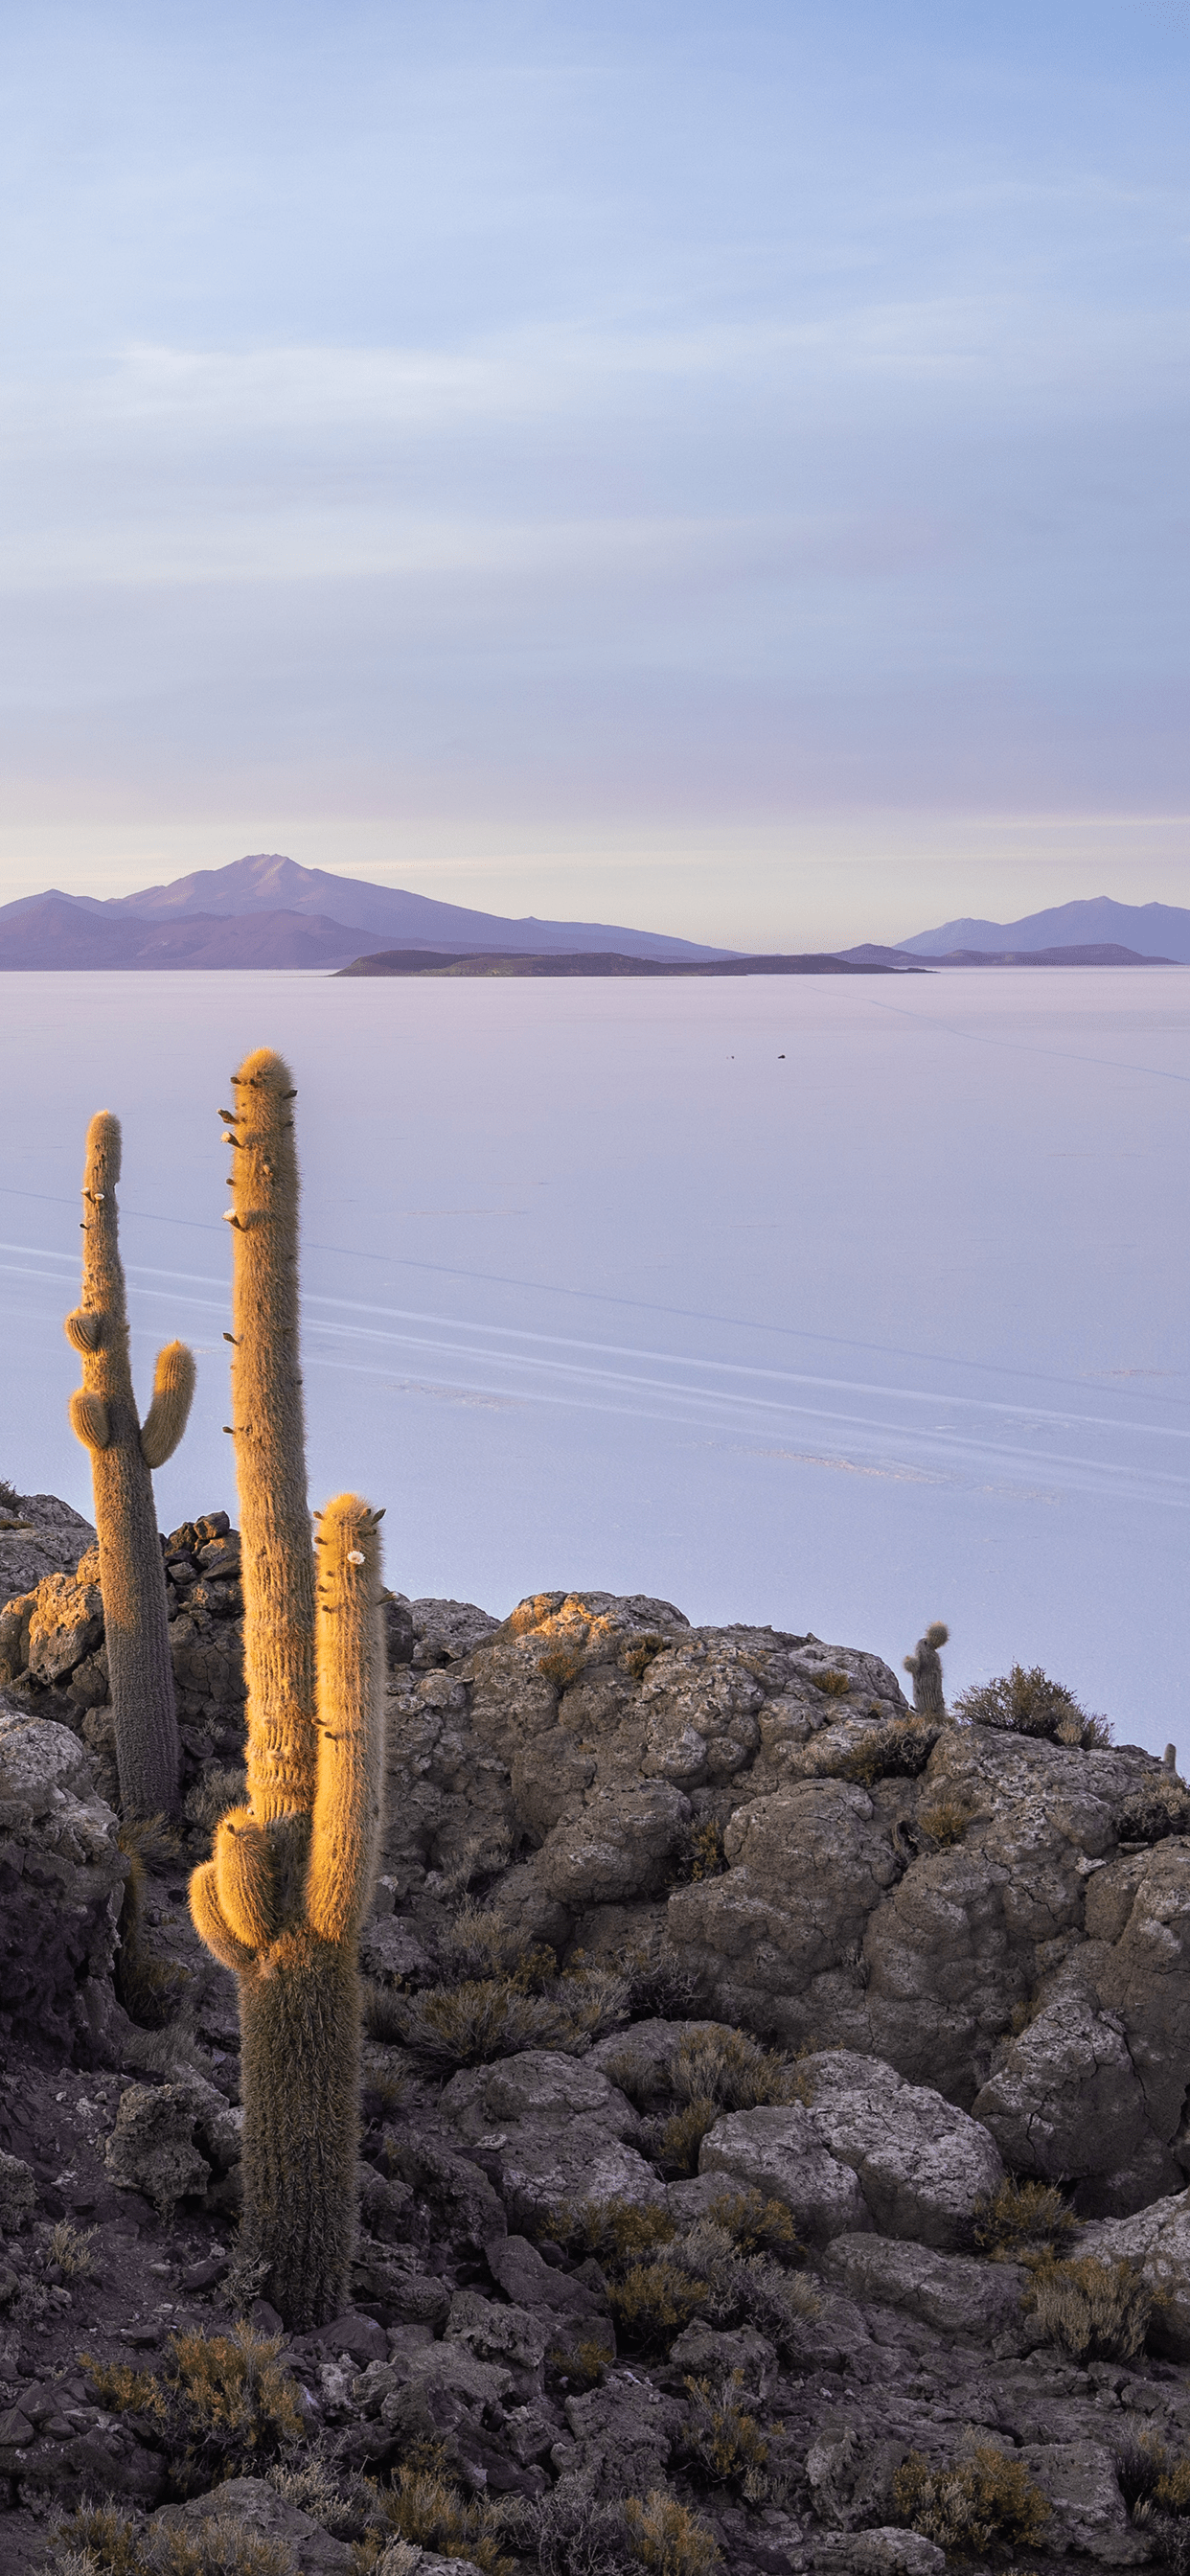 iPhone wallpaper uyuni bolivia 3 Salt desert